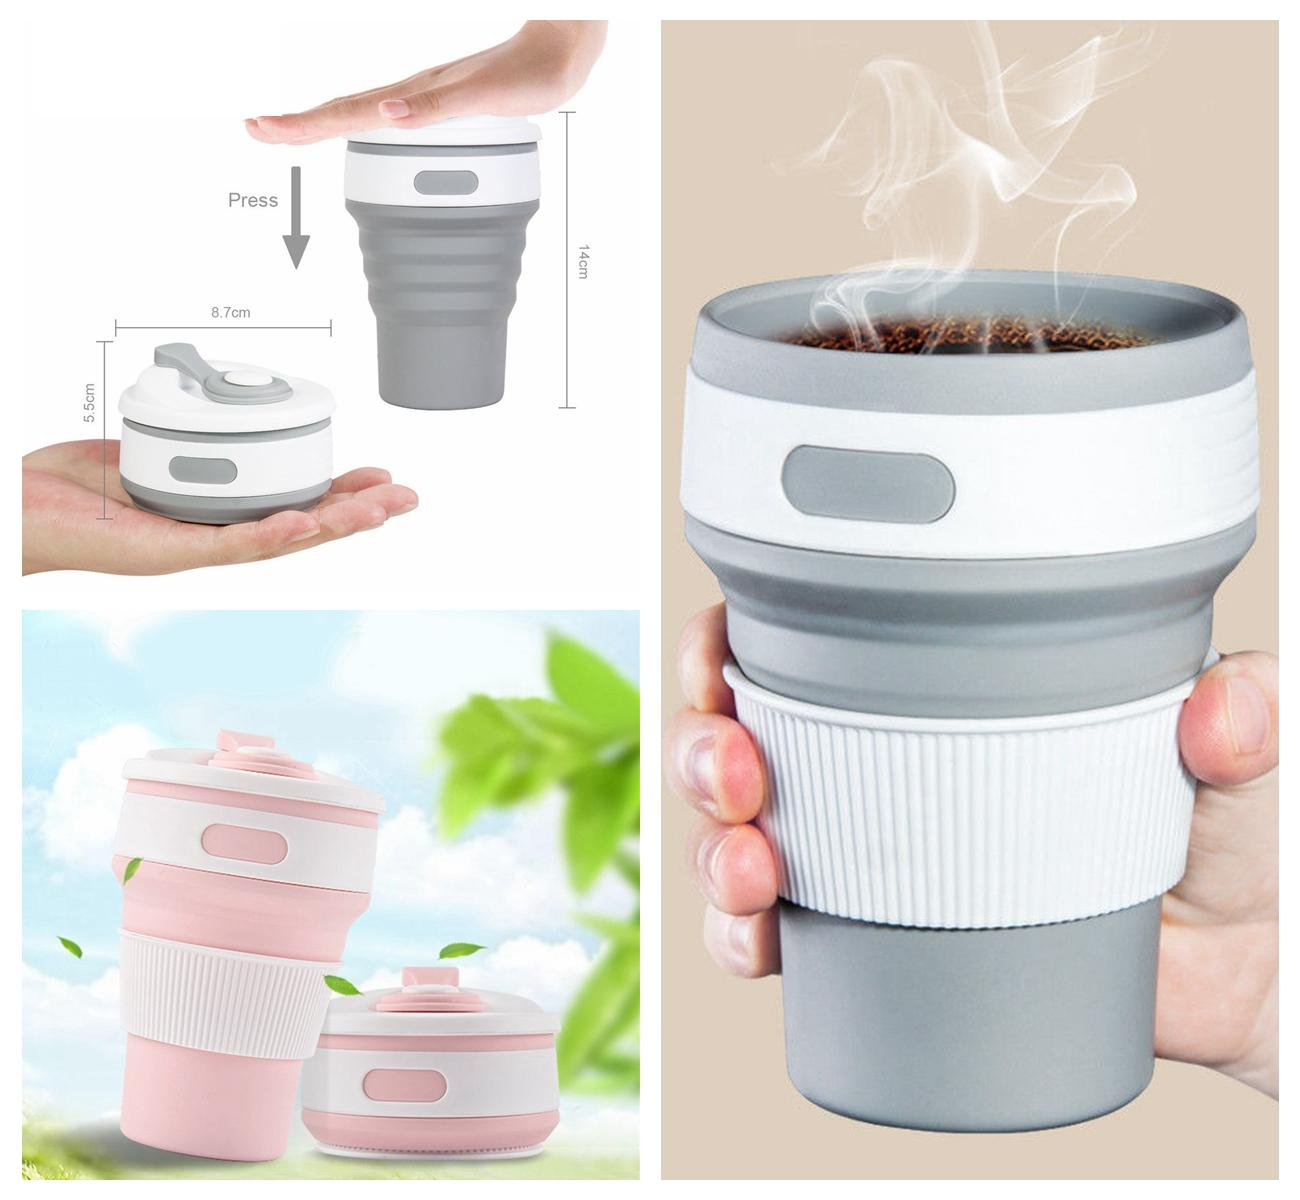 Hot New Folding Silicone Cup Portable Telescopic Drinking Collapsible Coffee Cup Multi-function Folding Travel Water Mug DDA387